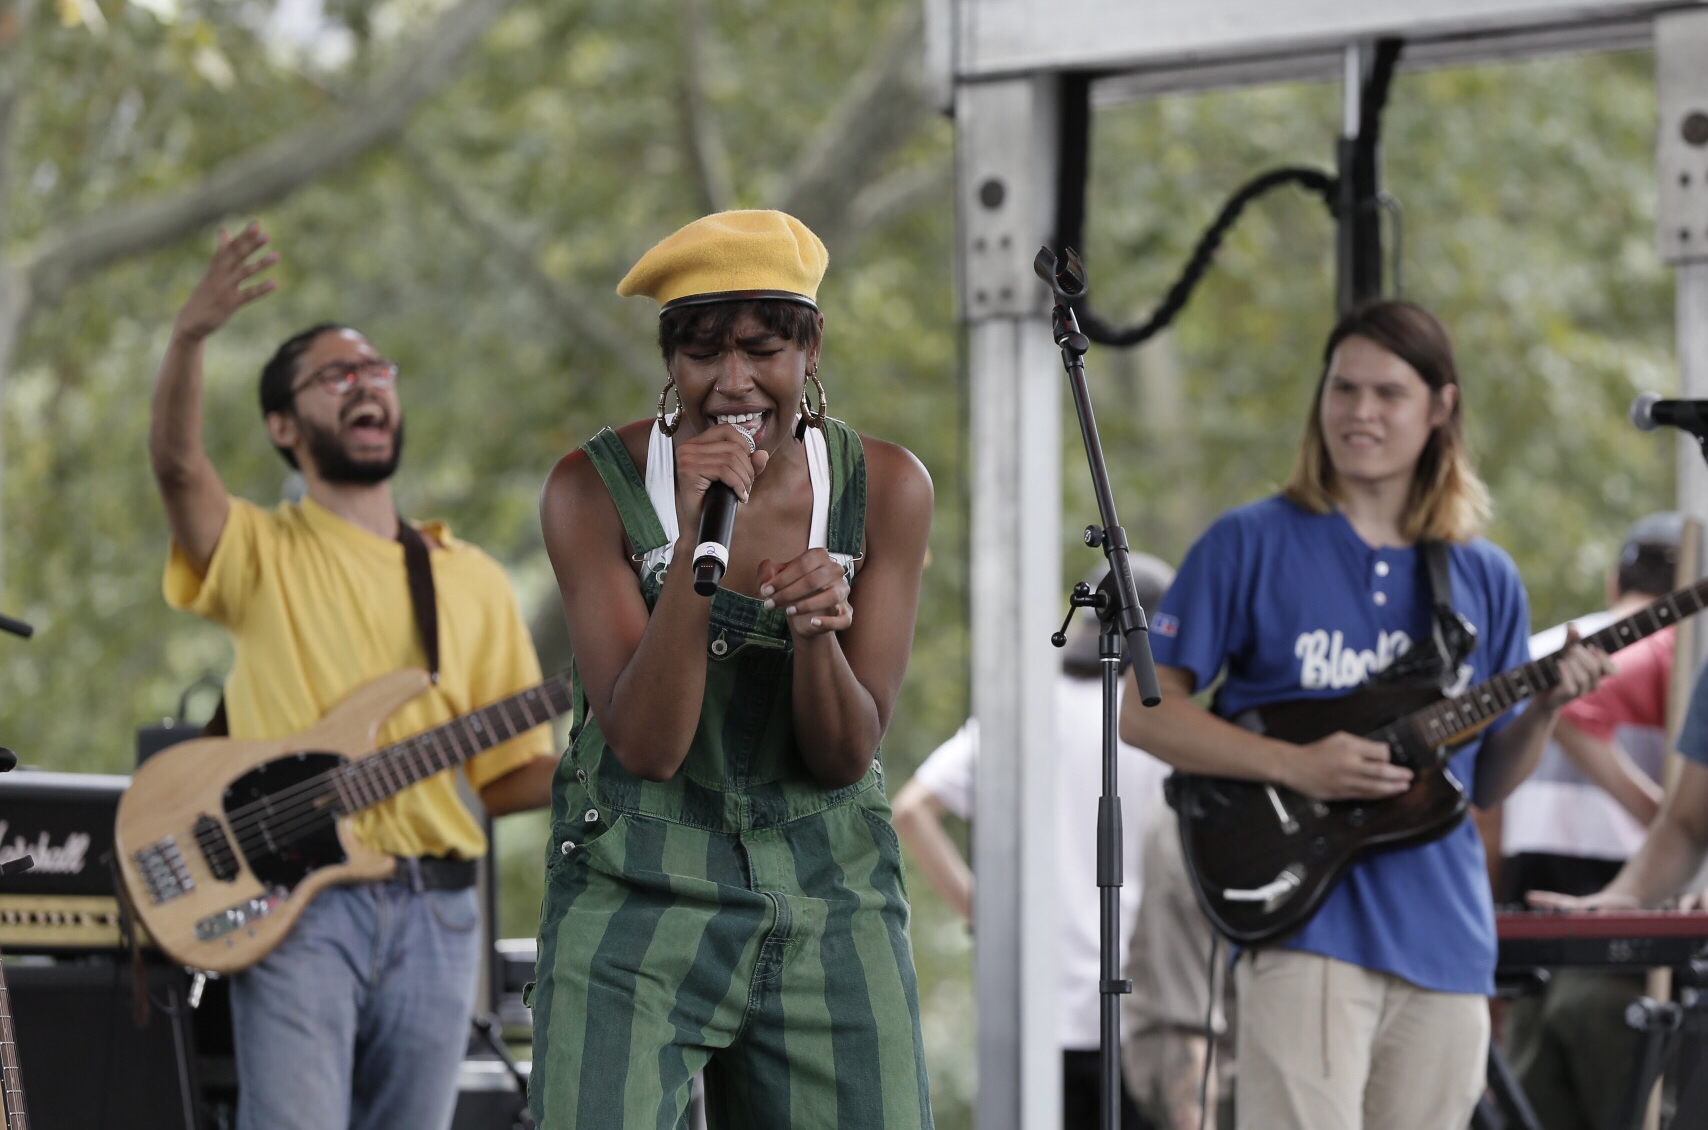 Orion Sun performs on the Skate Stage during the 2018 Budweiser Made in America Festival on the Ben Franklin Parkway in Phila., Pa. on Sept. 1, 2018. ELIZABETH ROBERTSON / staff photographer